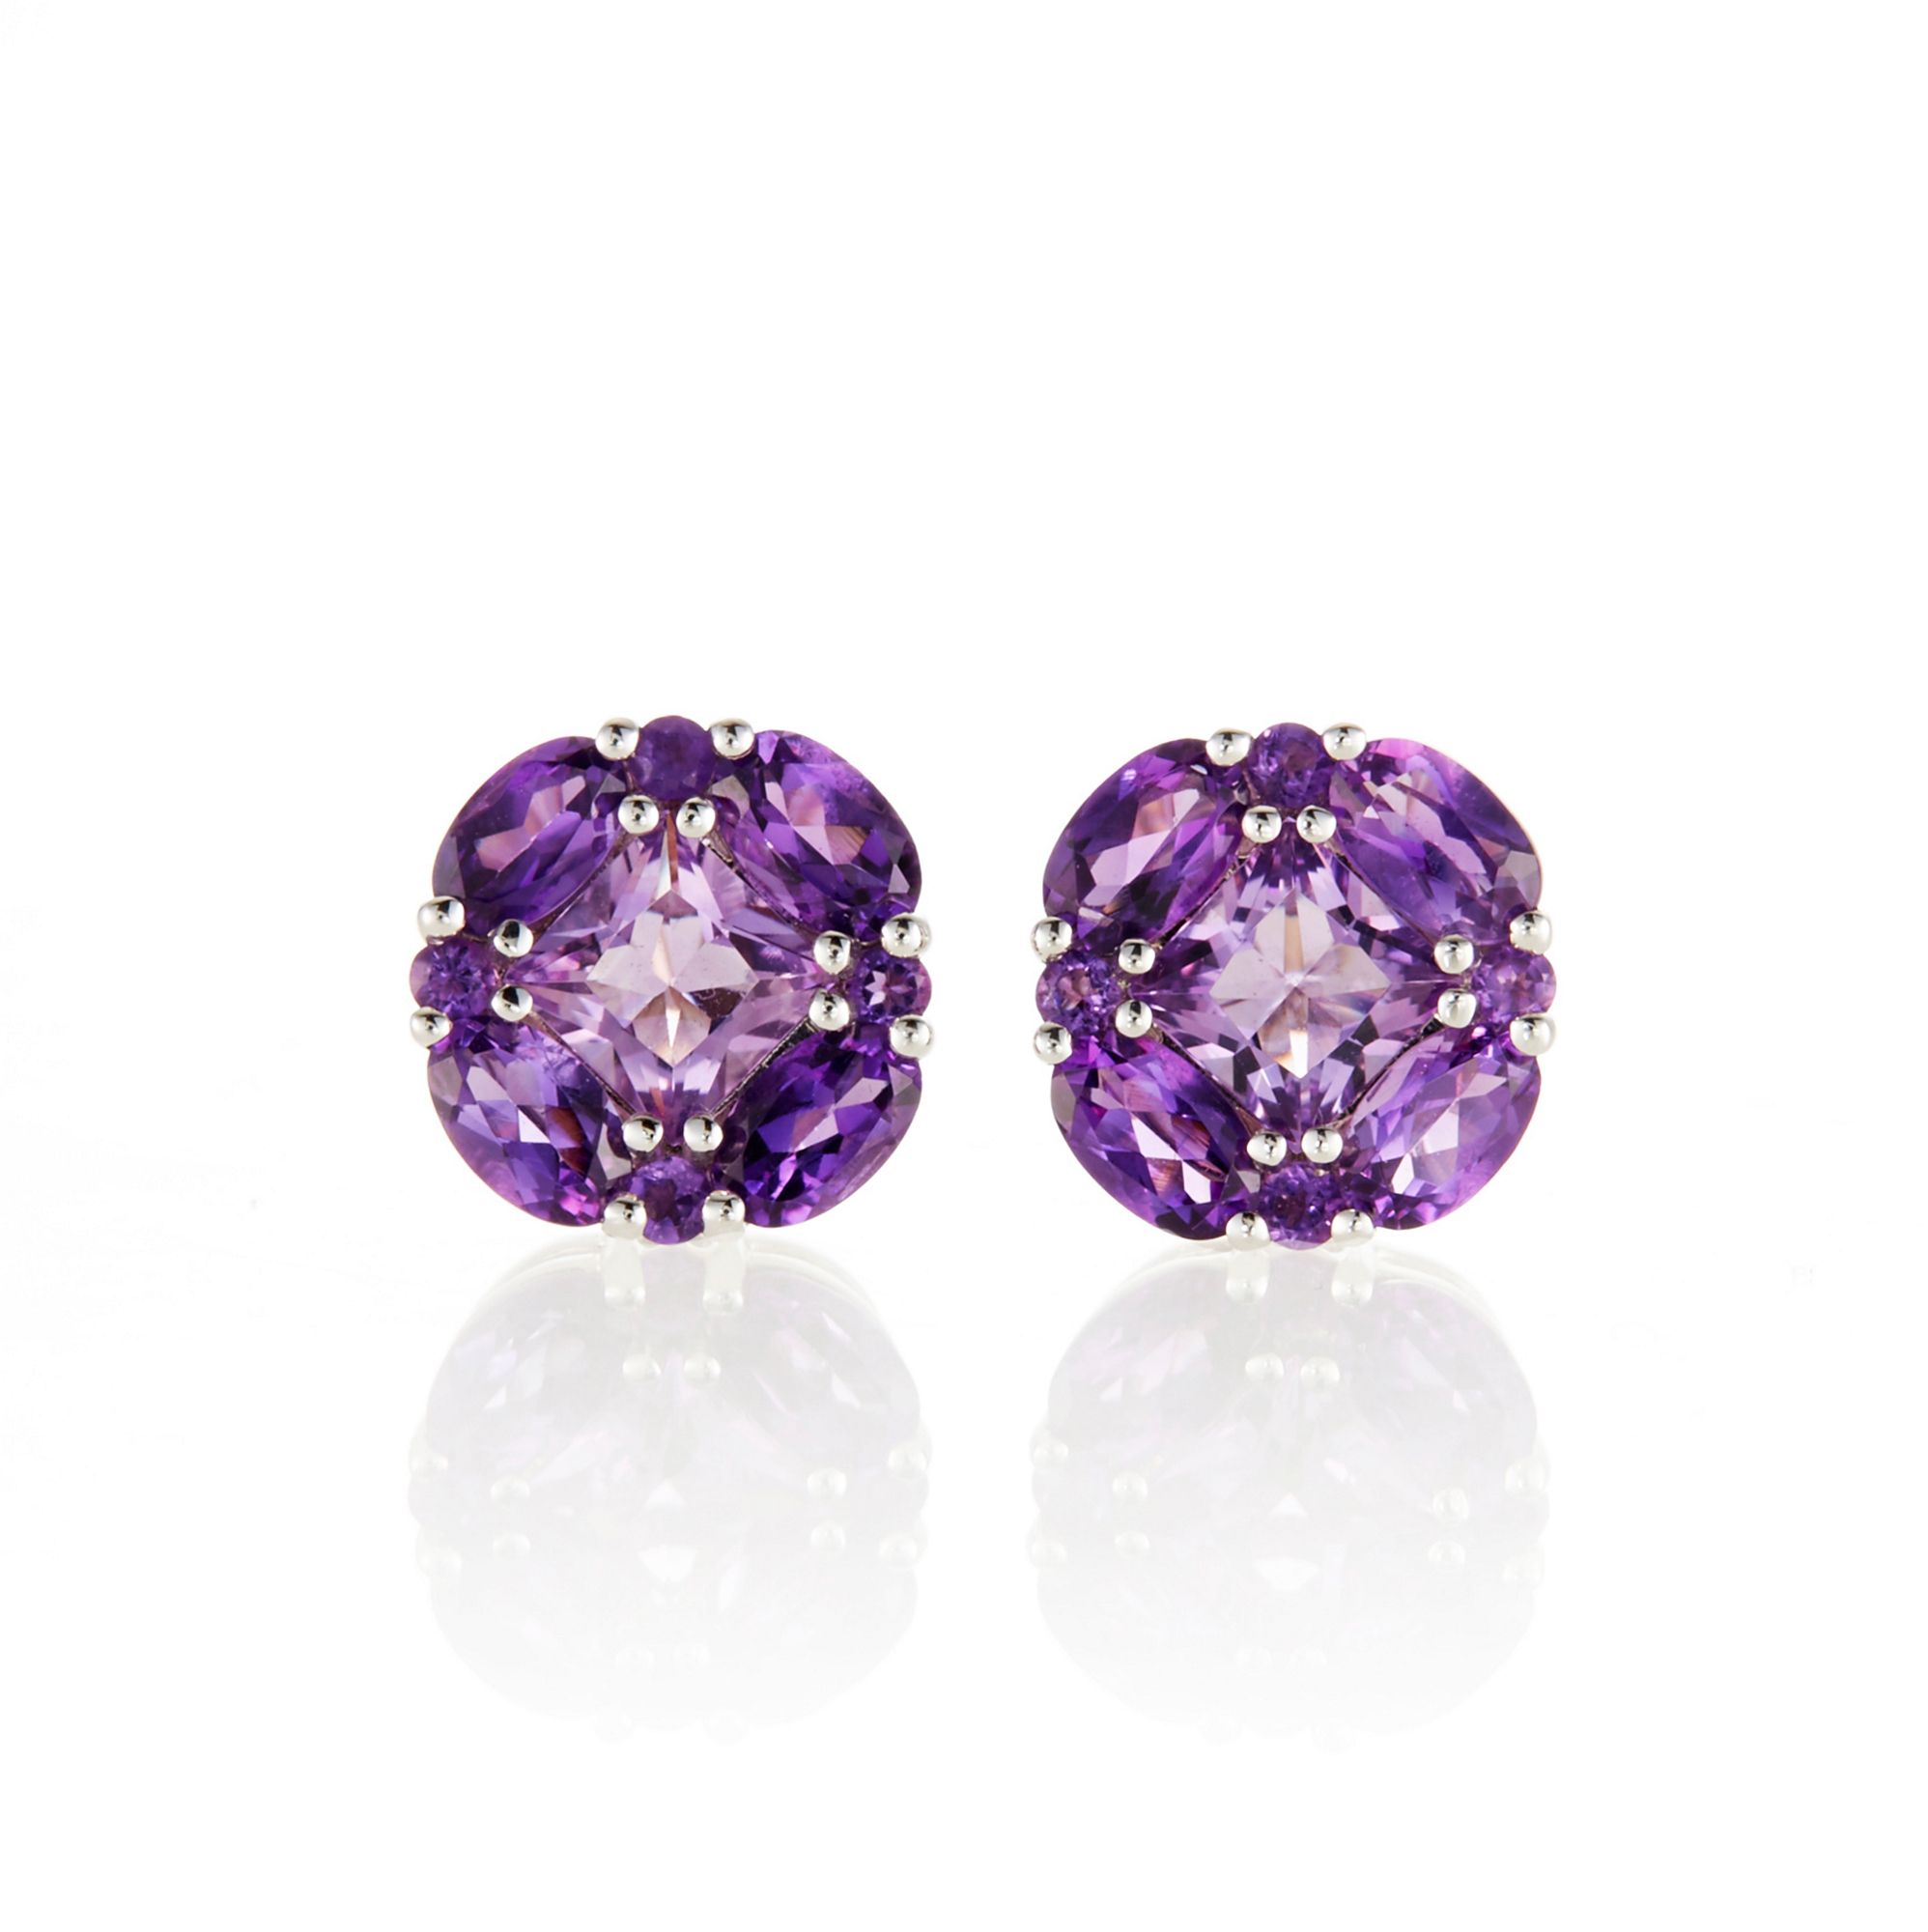 Gump's Multi Amethyst Quadrille Stud Earrings